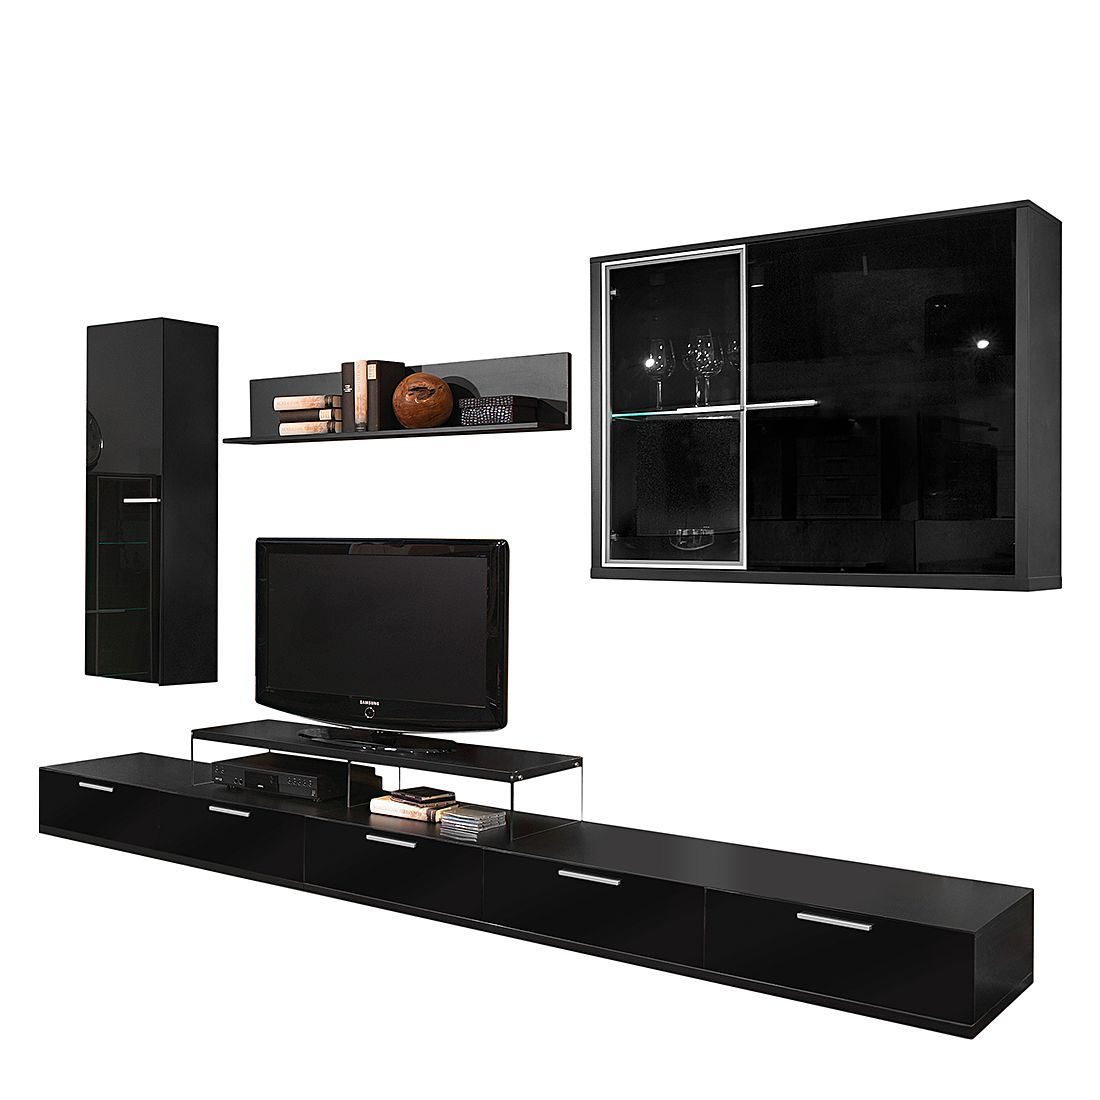 wohnwand game 6 teilig schwarz hochglanz arte m online bestellen. Black Bedroom Furniture Sets. Home Design Ideas